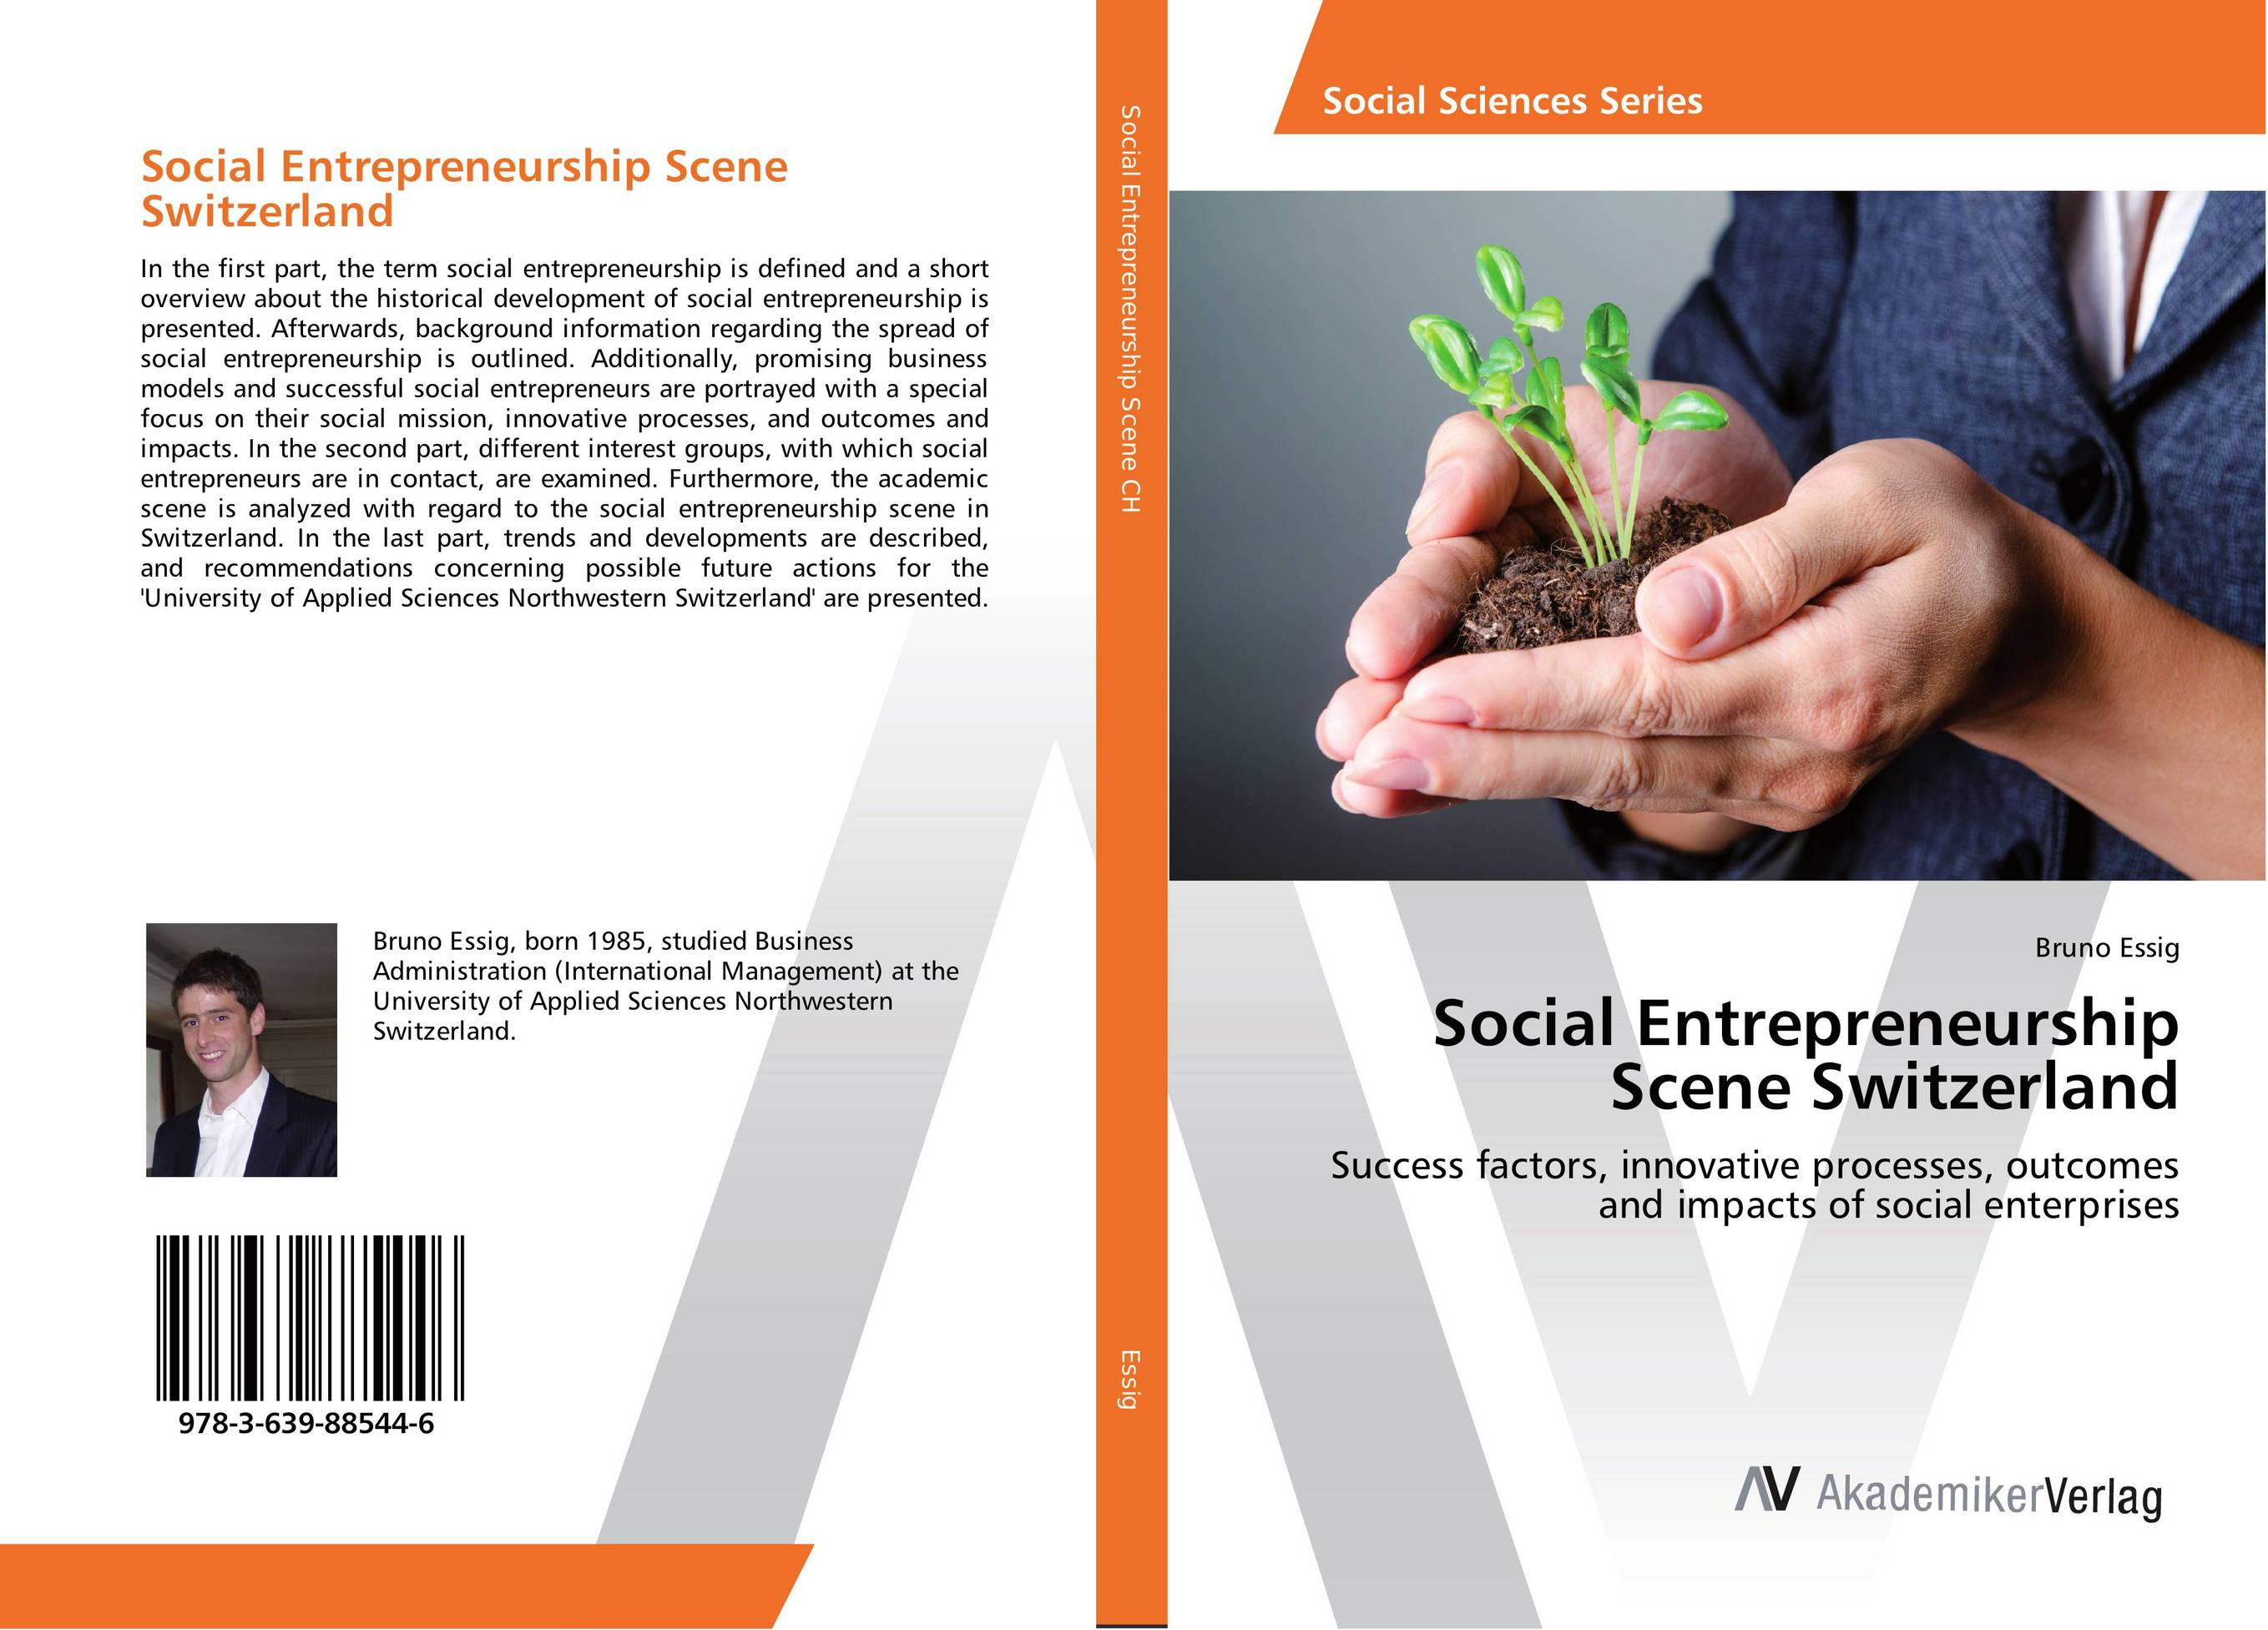 Social Entrepreneurship Scene Switzerland